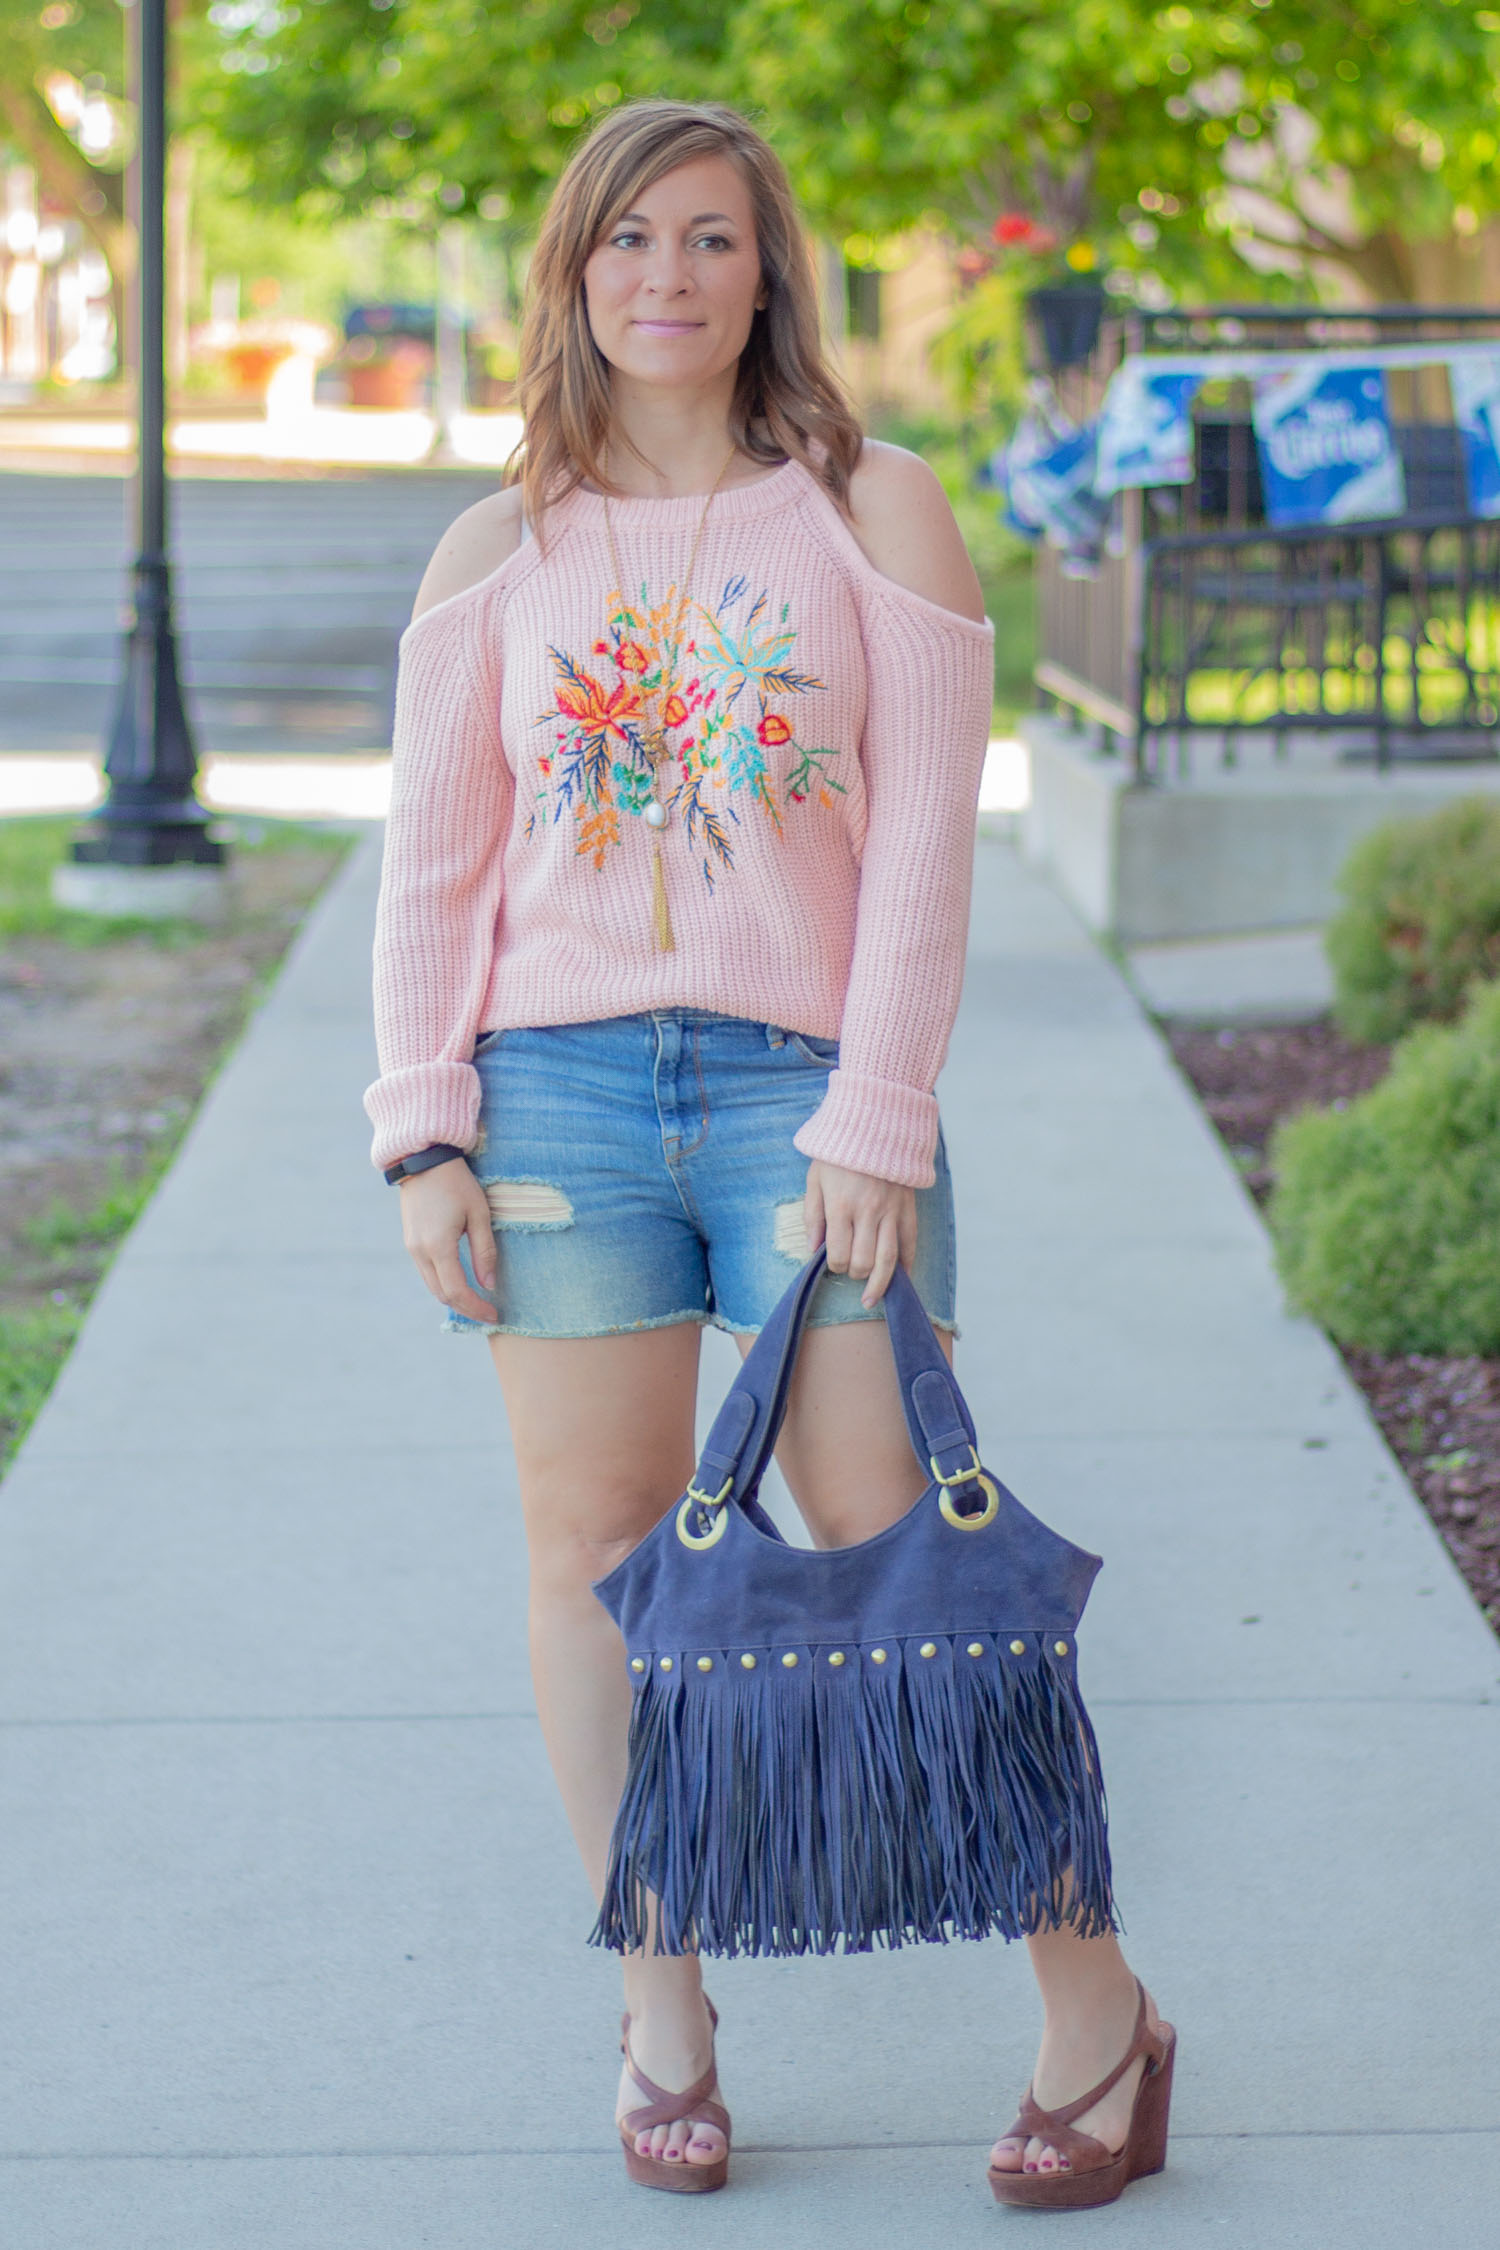 Just what you need for summer - a cute casual boho inspired outfit, perfect for all of your fun summer outings!